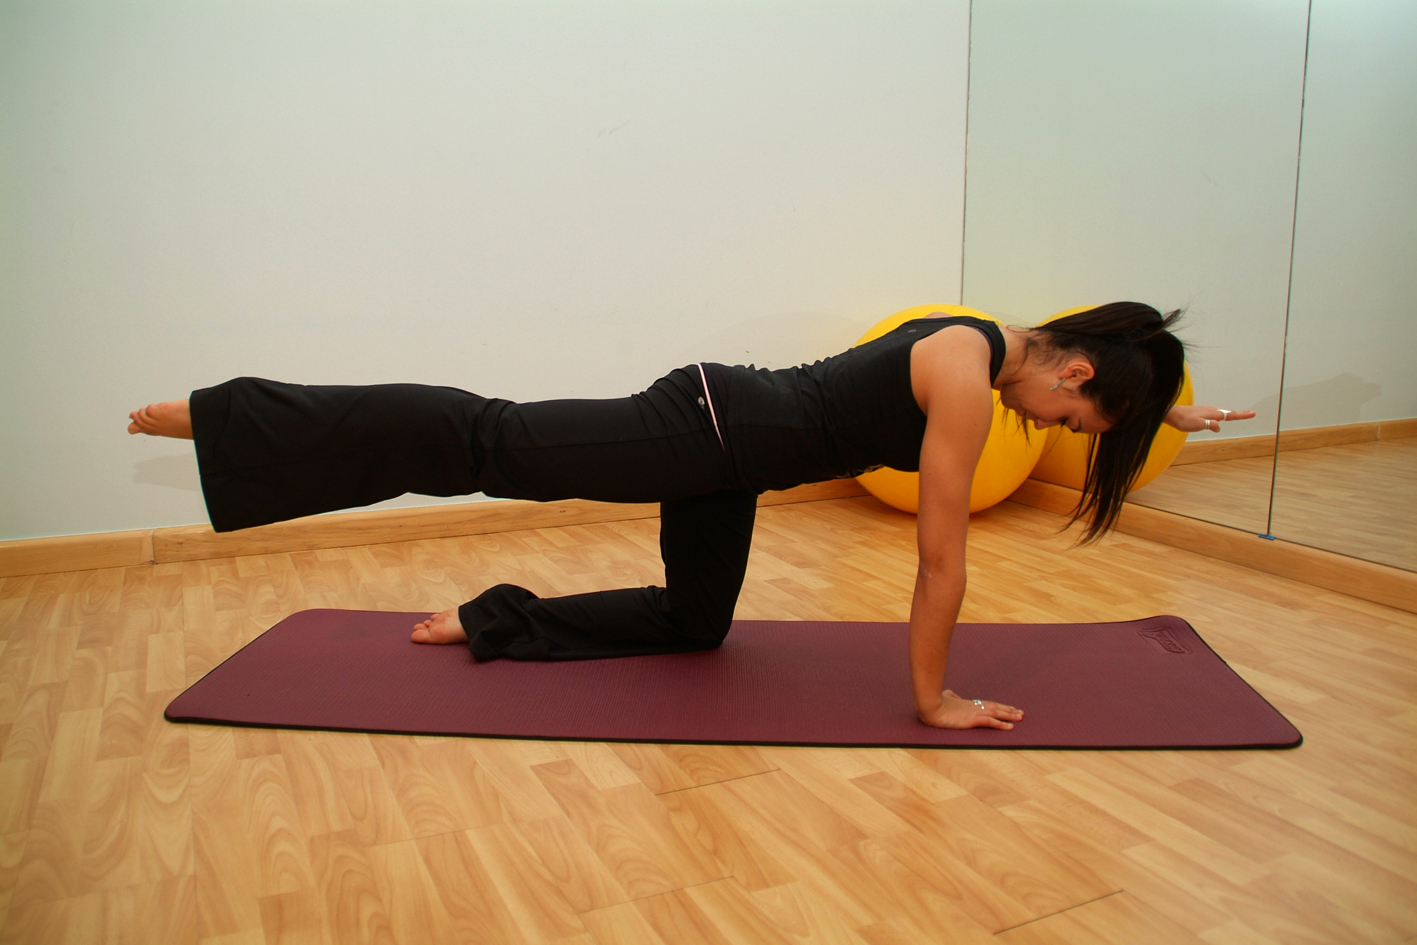 Pilates is safe and gentle enough to speed recovery in people with health problems and injuries